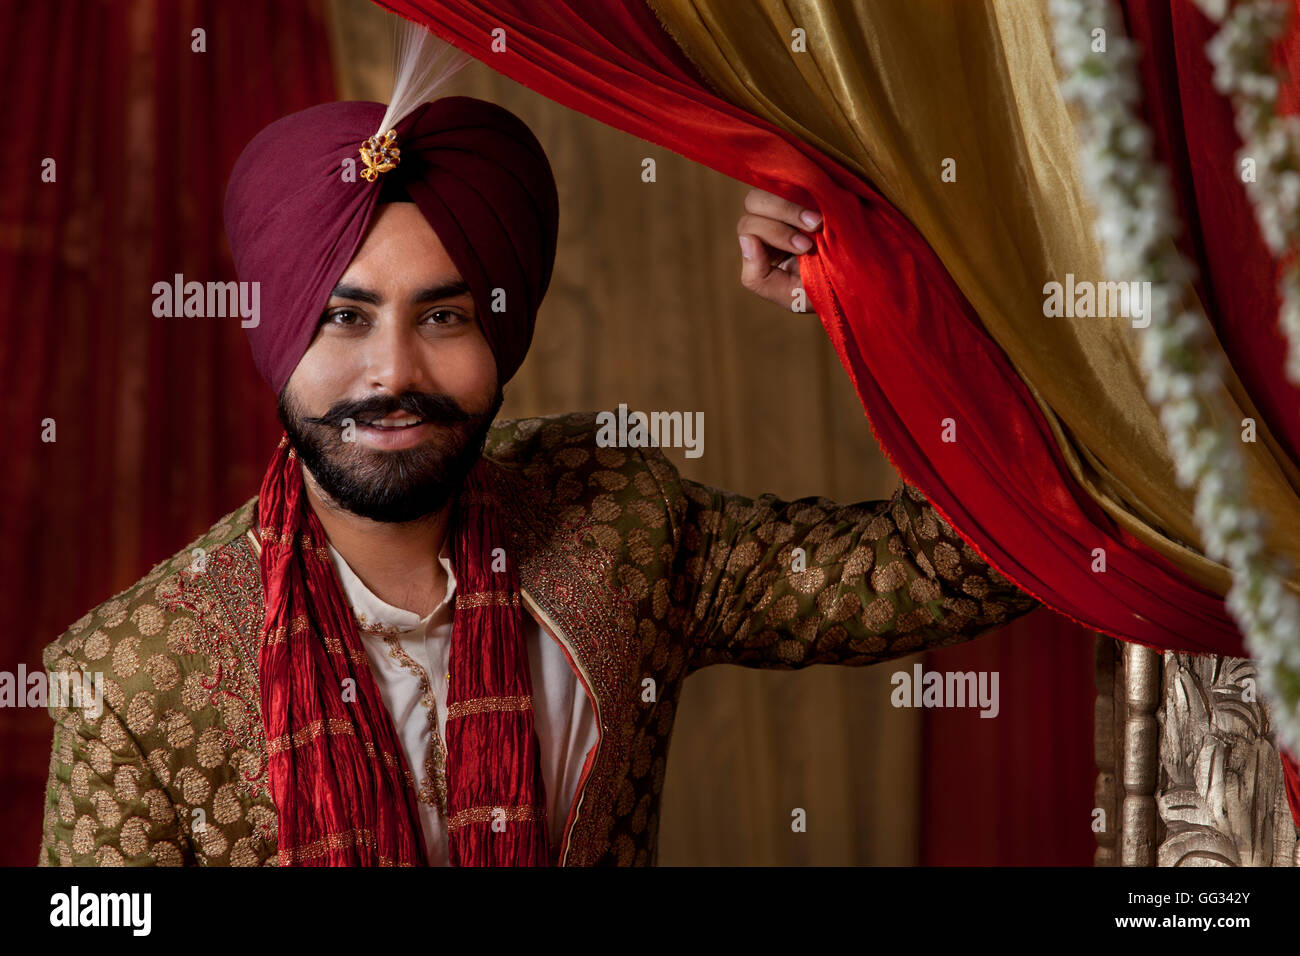 Magnificent Groom At A Traditional Sikh Wedding Stock Photo Royalty Free Hairstyles For Men Maxibearus